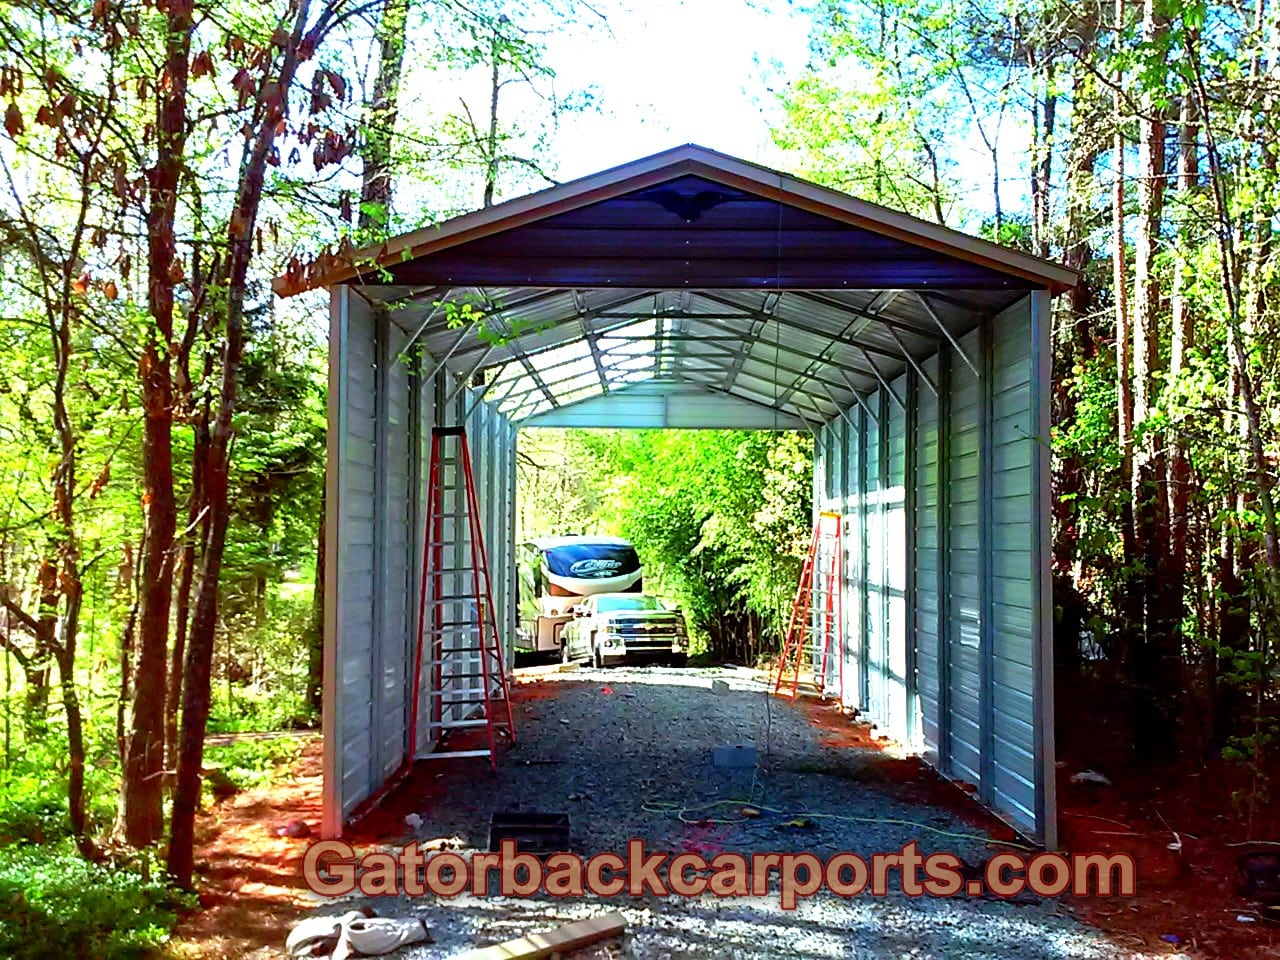 Rv carports rv covers rv garages gatorback carports for Carports with sides